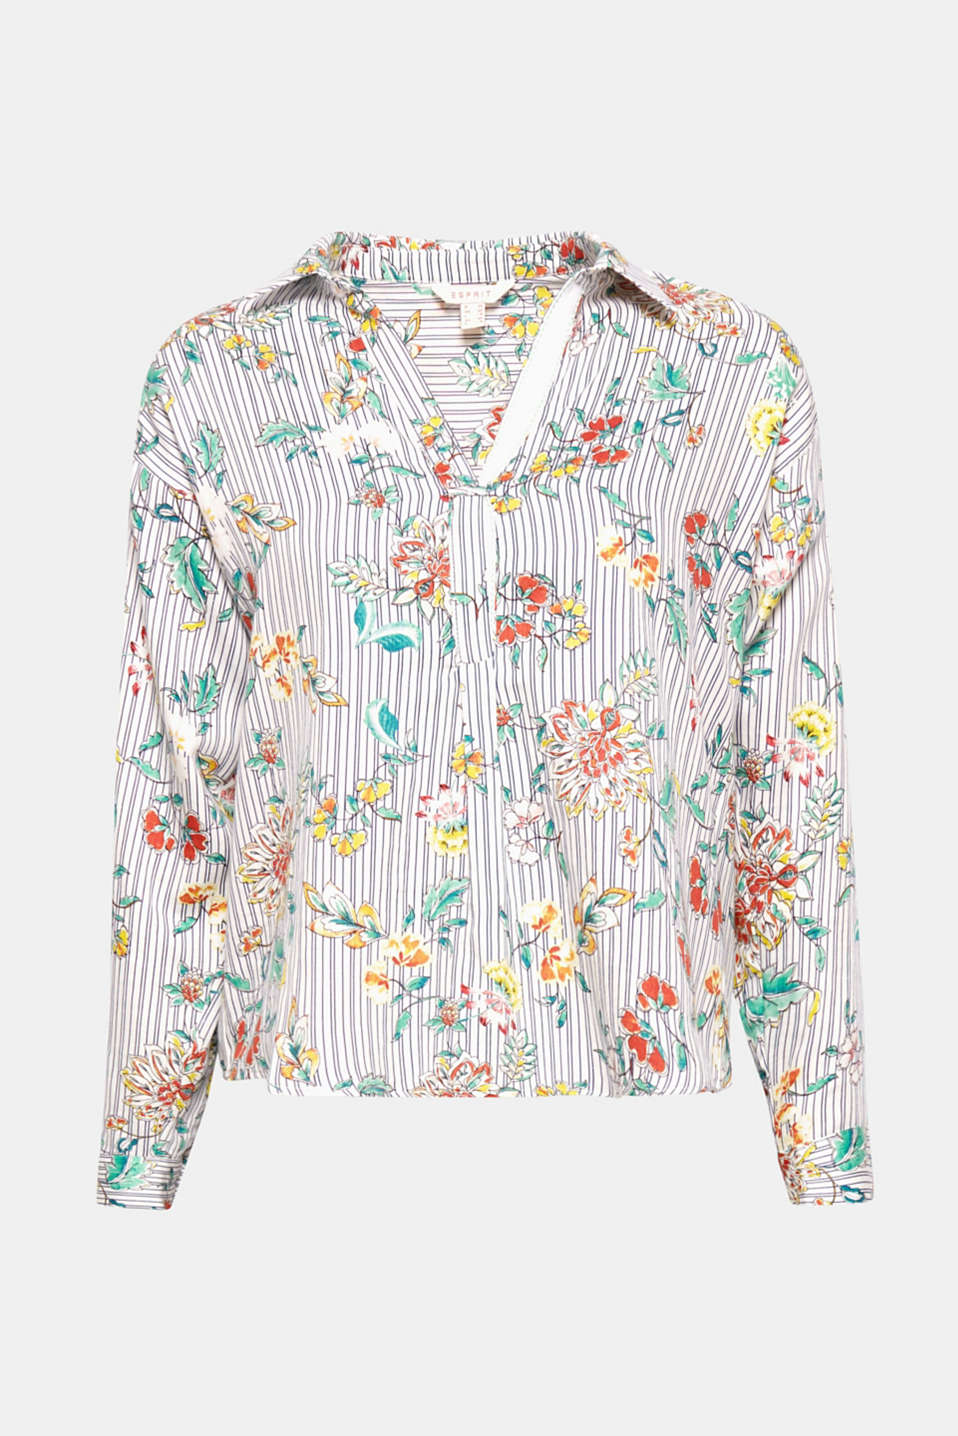 With its sophisticated neckline and adjustable, turn-up sleeves, this dreamy, printed shirt blouse in 100% cotton is a true styling wonder.